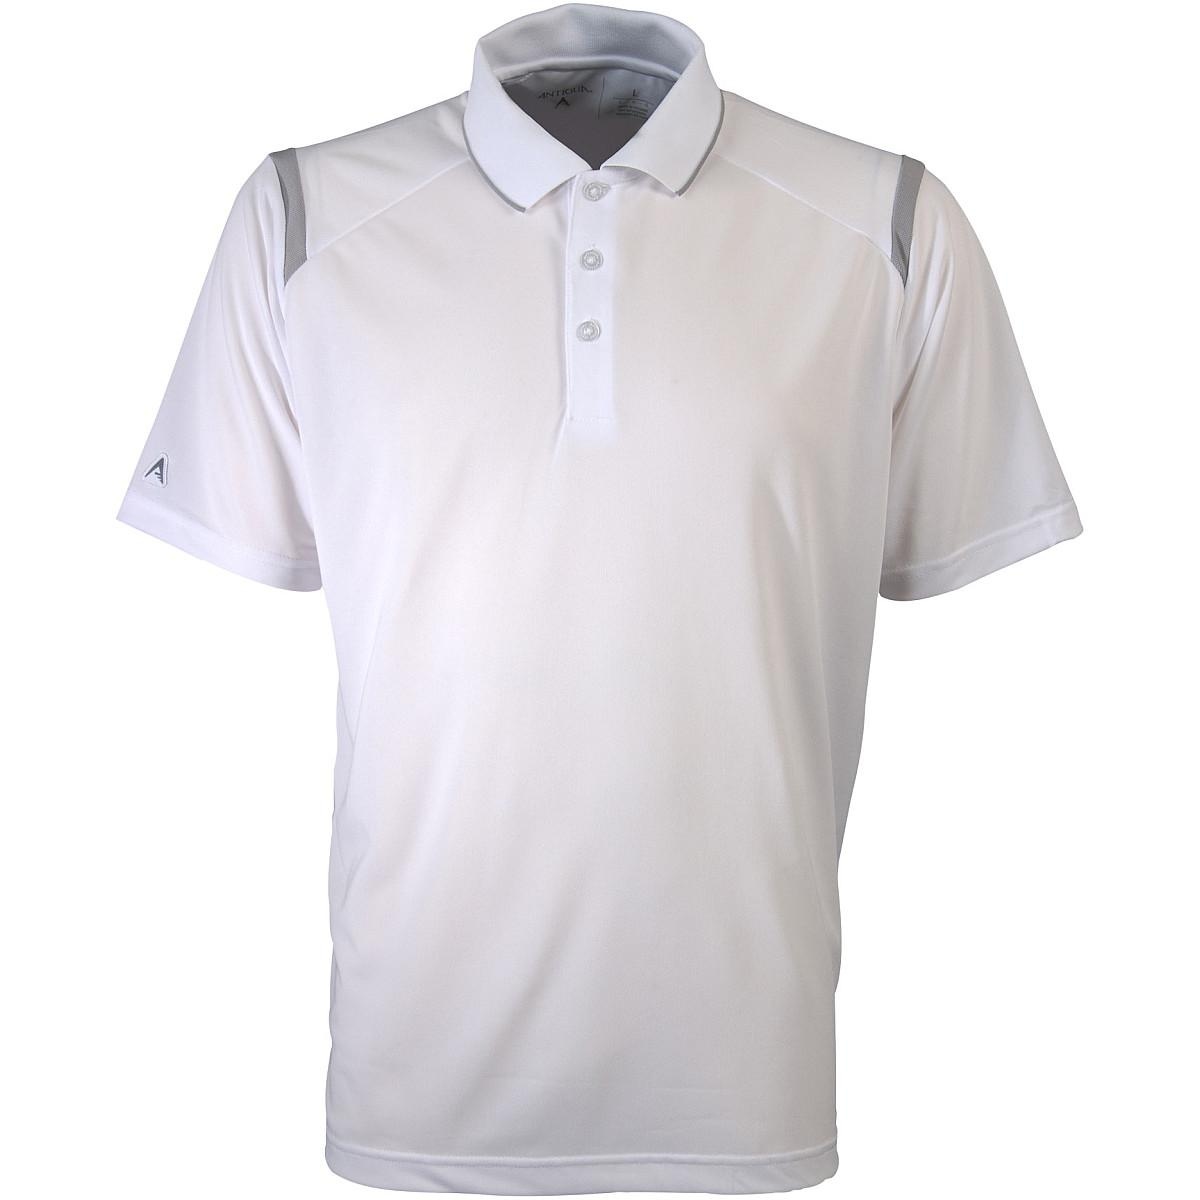 Antigua Men s Merit Polo Shirt S White Silver. About this product. Picture  1 of 2  Picture 2 of 2 97d4d207d